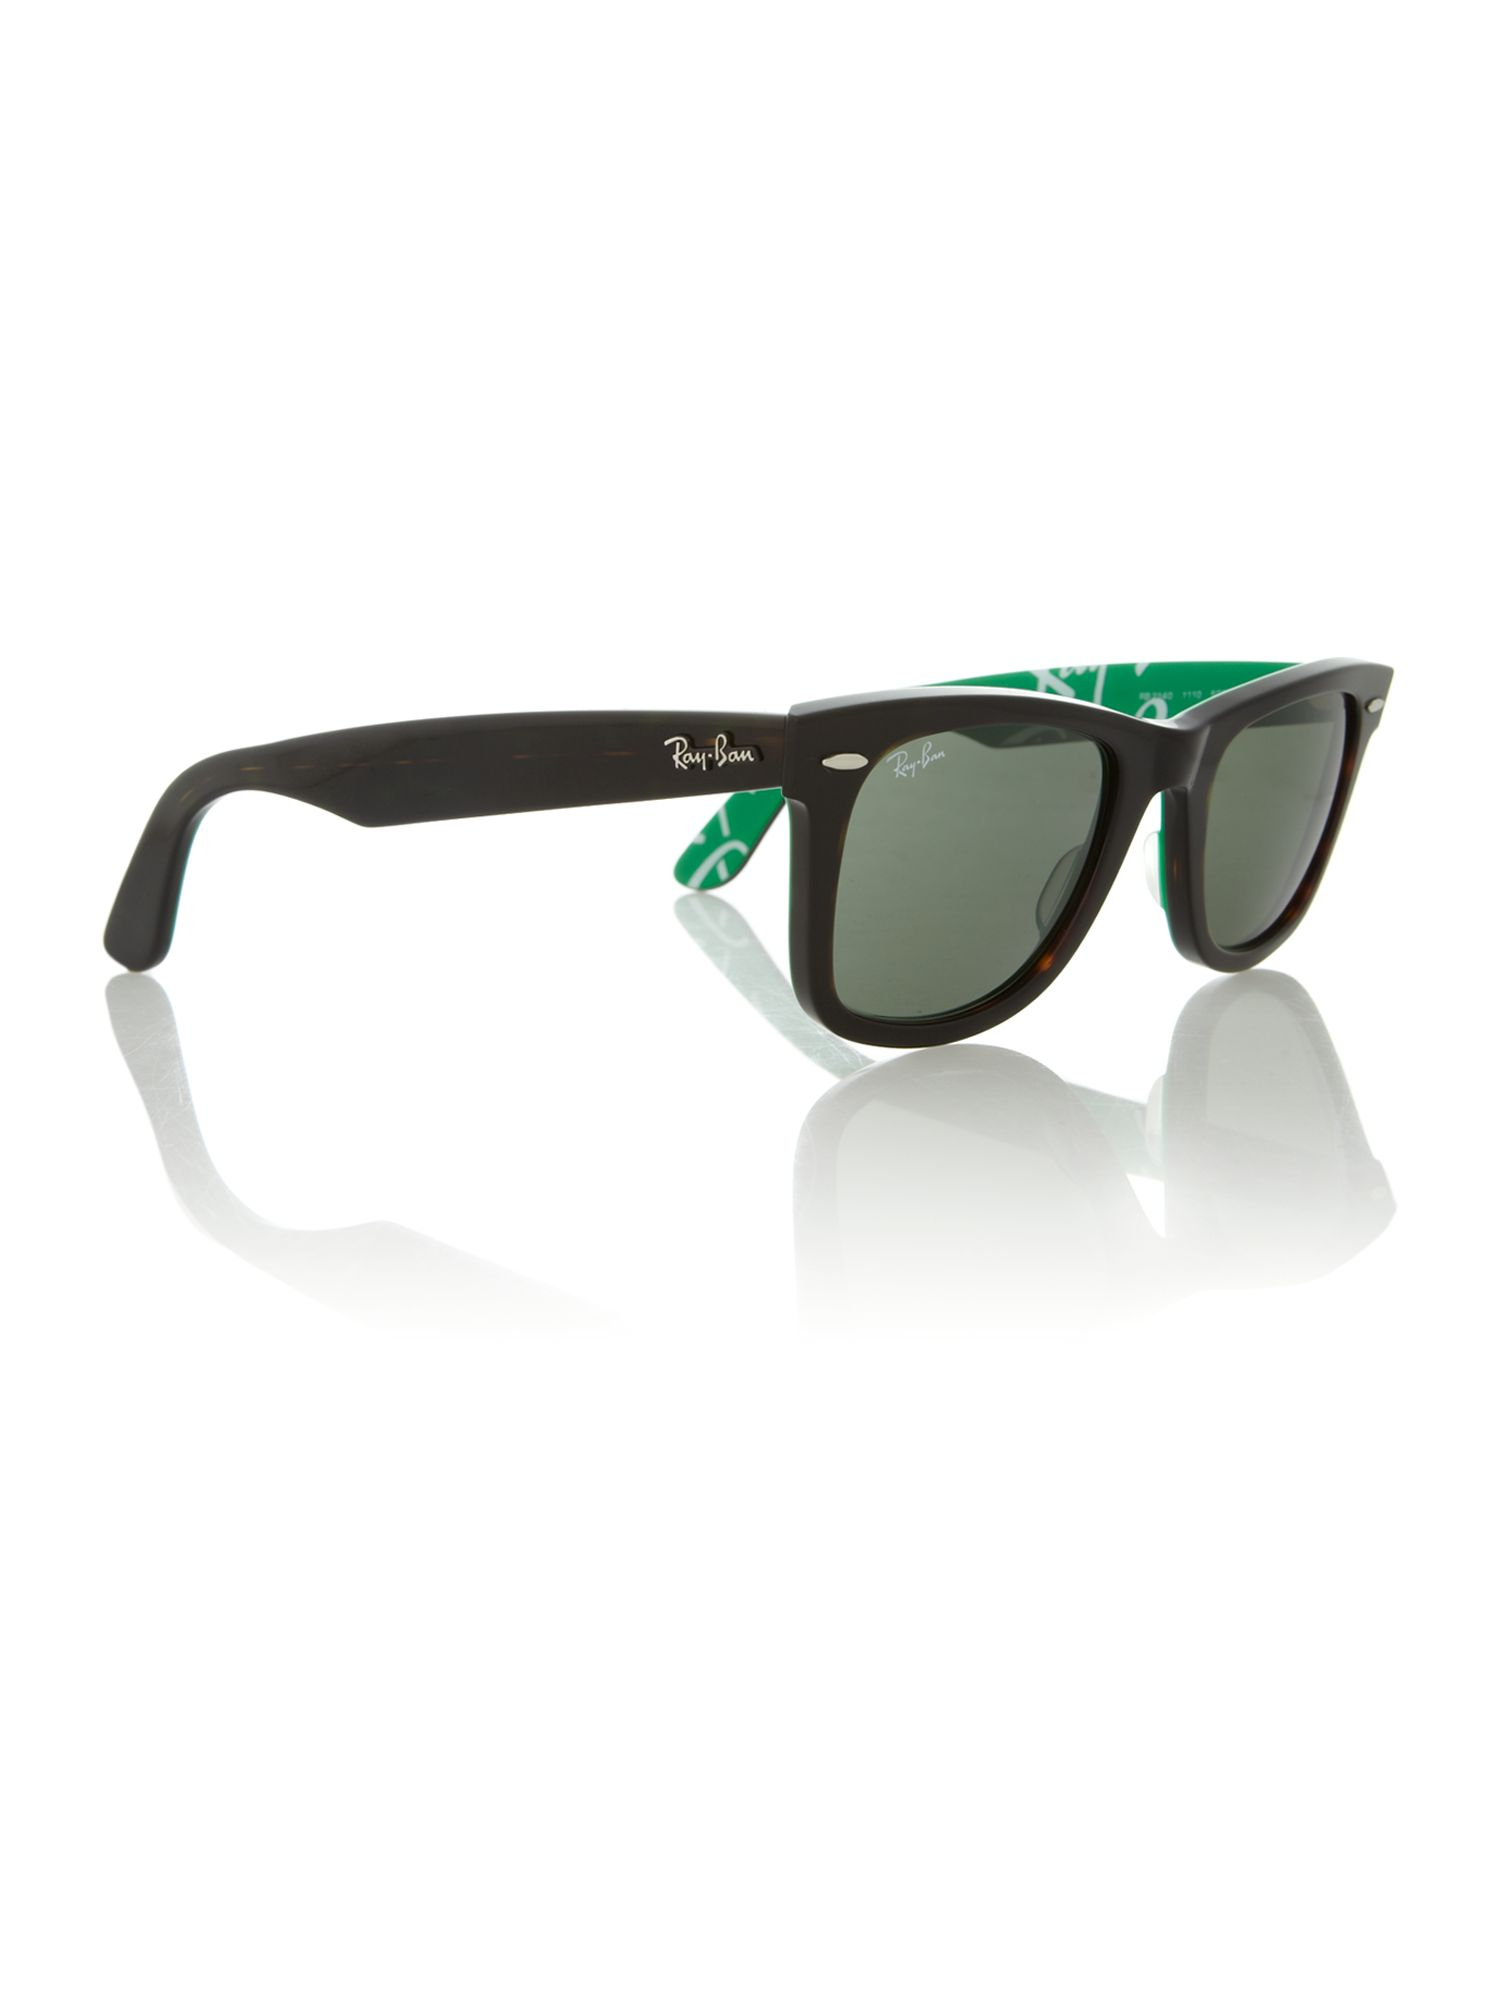 ba2549be12 Ray Ban 5150 2019 « One More Soul